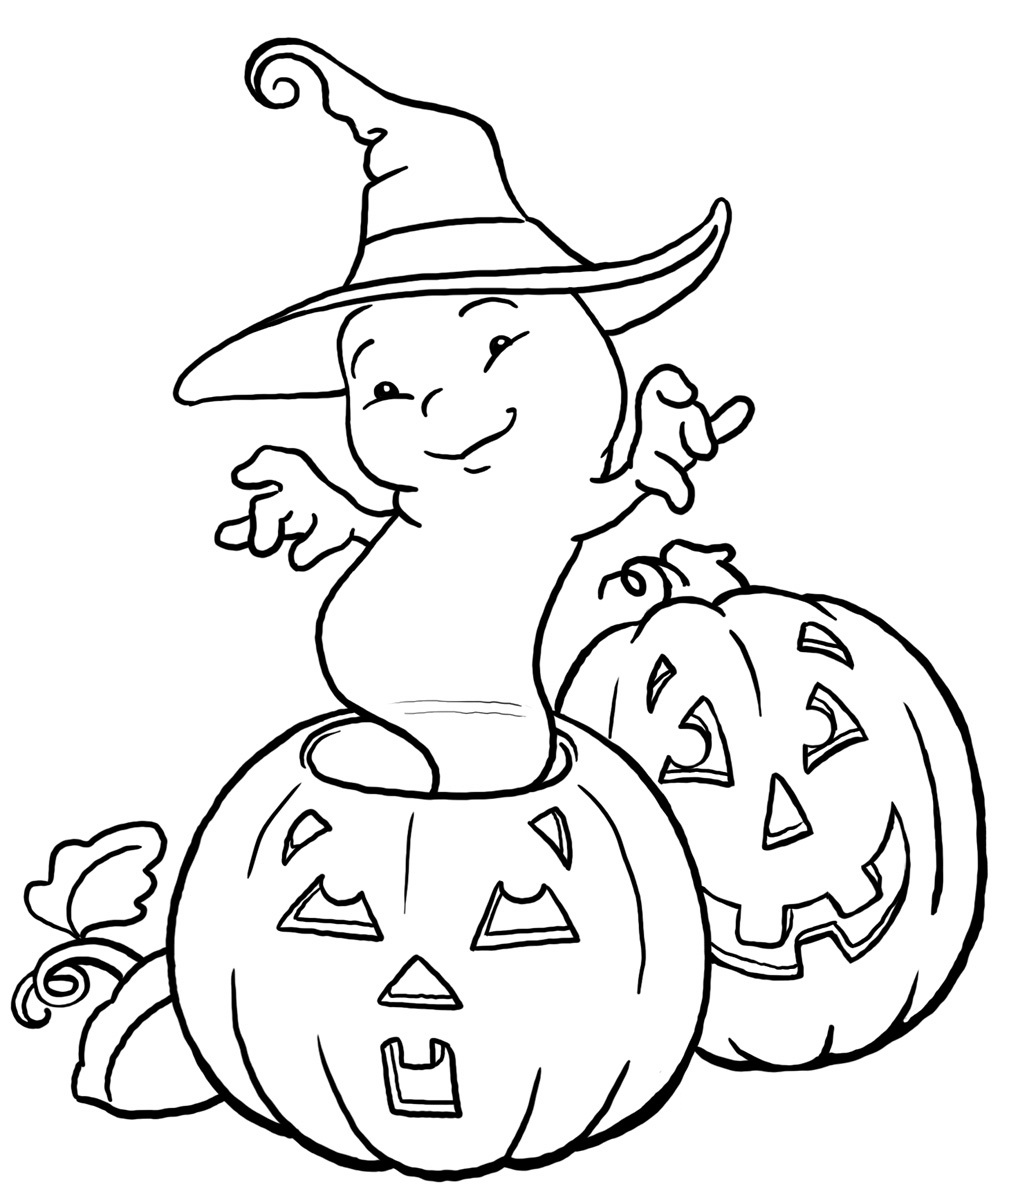 free coloring pages halloween - photo#46